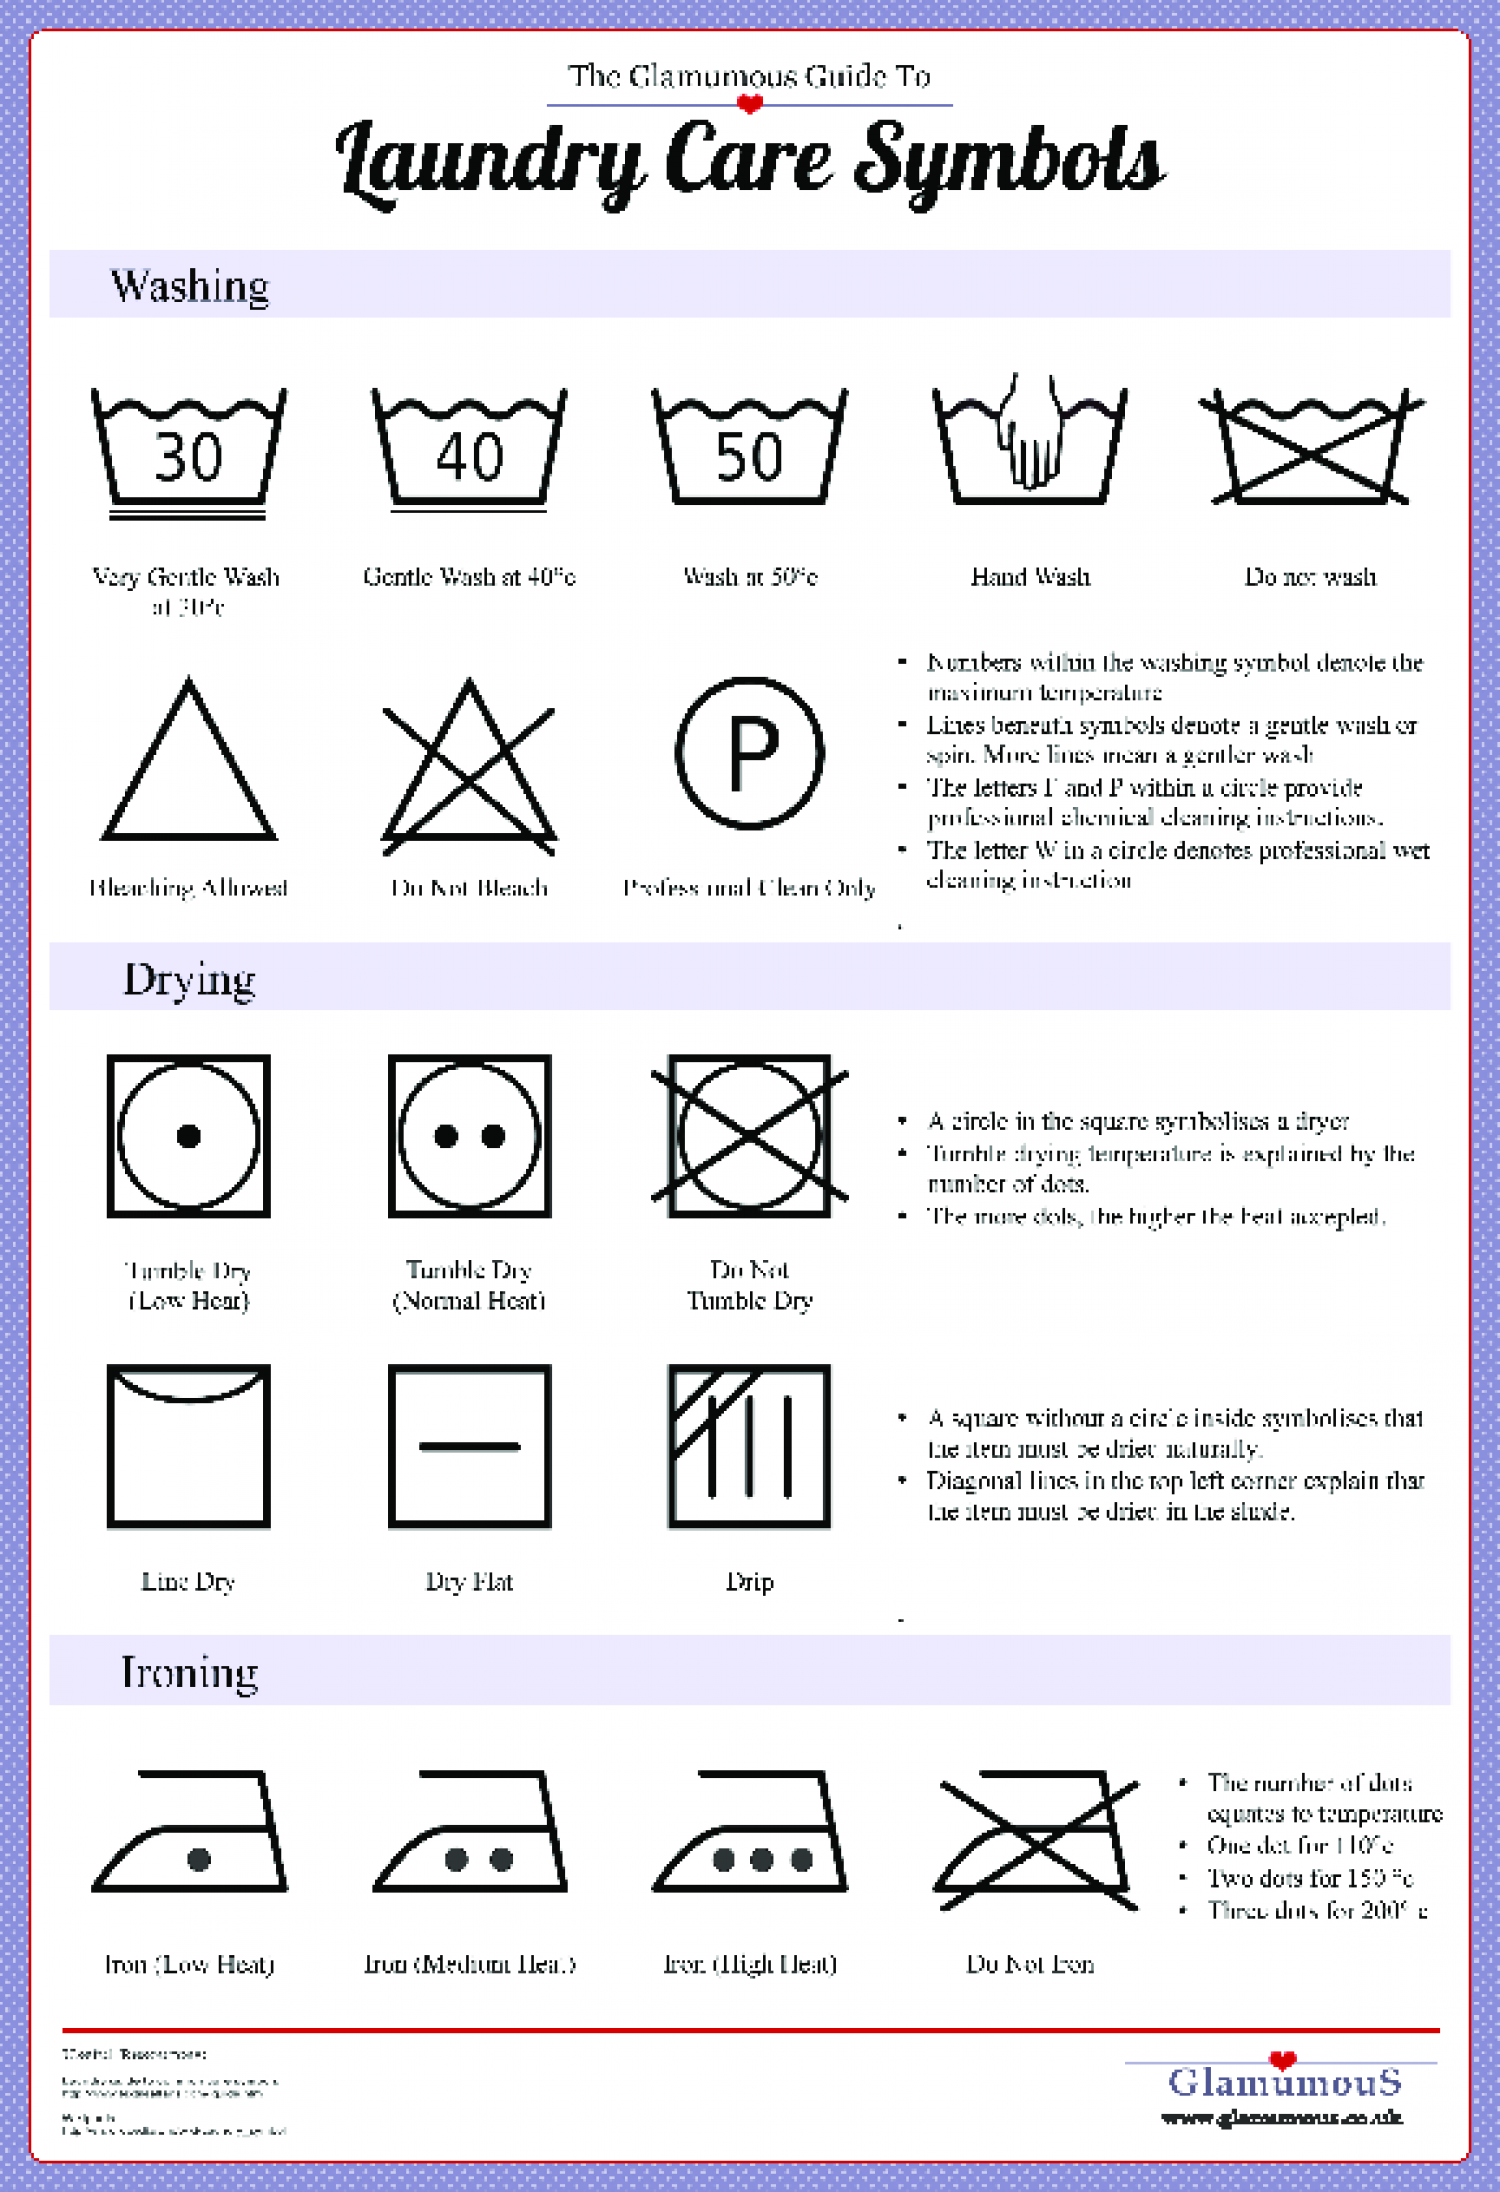 A handy, printable chart of the laundry care symbols on fabric tags and what they mean. Clothes washing symbols and their meanings. Ever wonder what those cryptic laundry care symbols on the tags of your washable goods mean? Those symbols are .